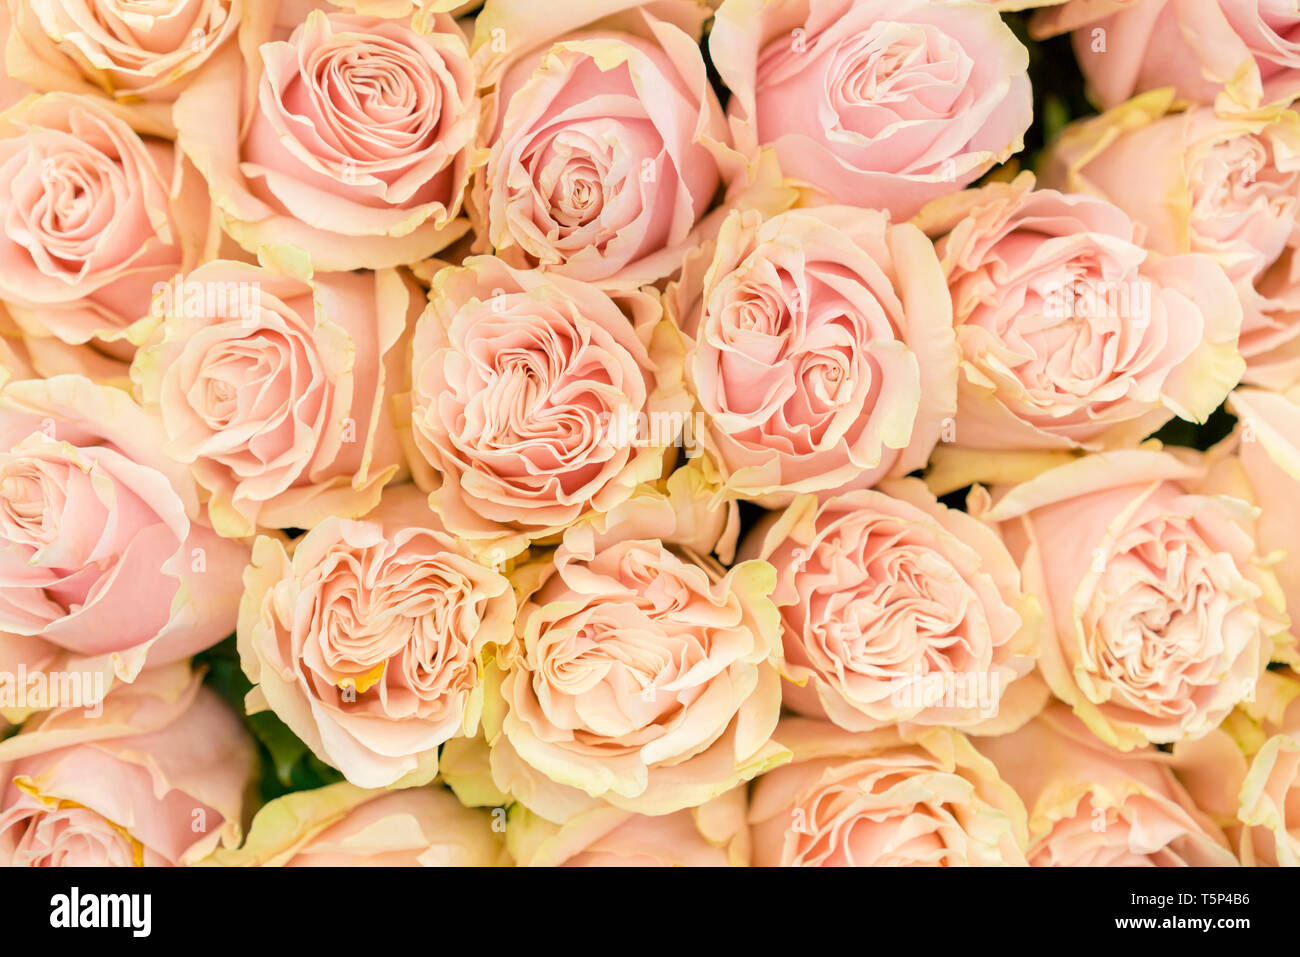 background of pink orange and peach roses fresh pink roses a huge bouquet of flowers the best gift for women stock photo alamy alamy